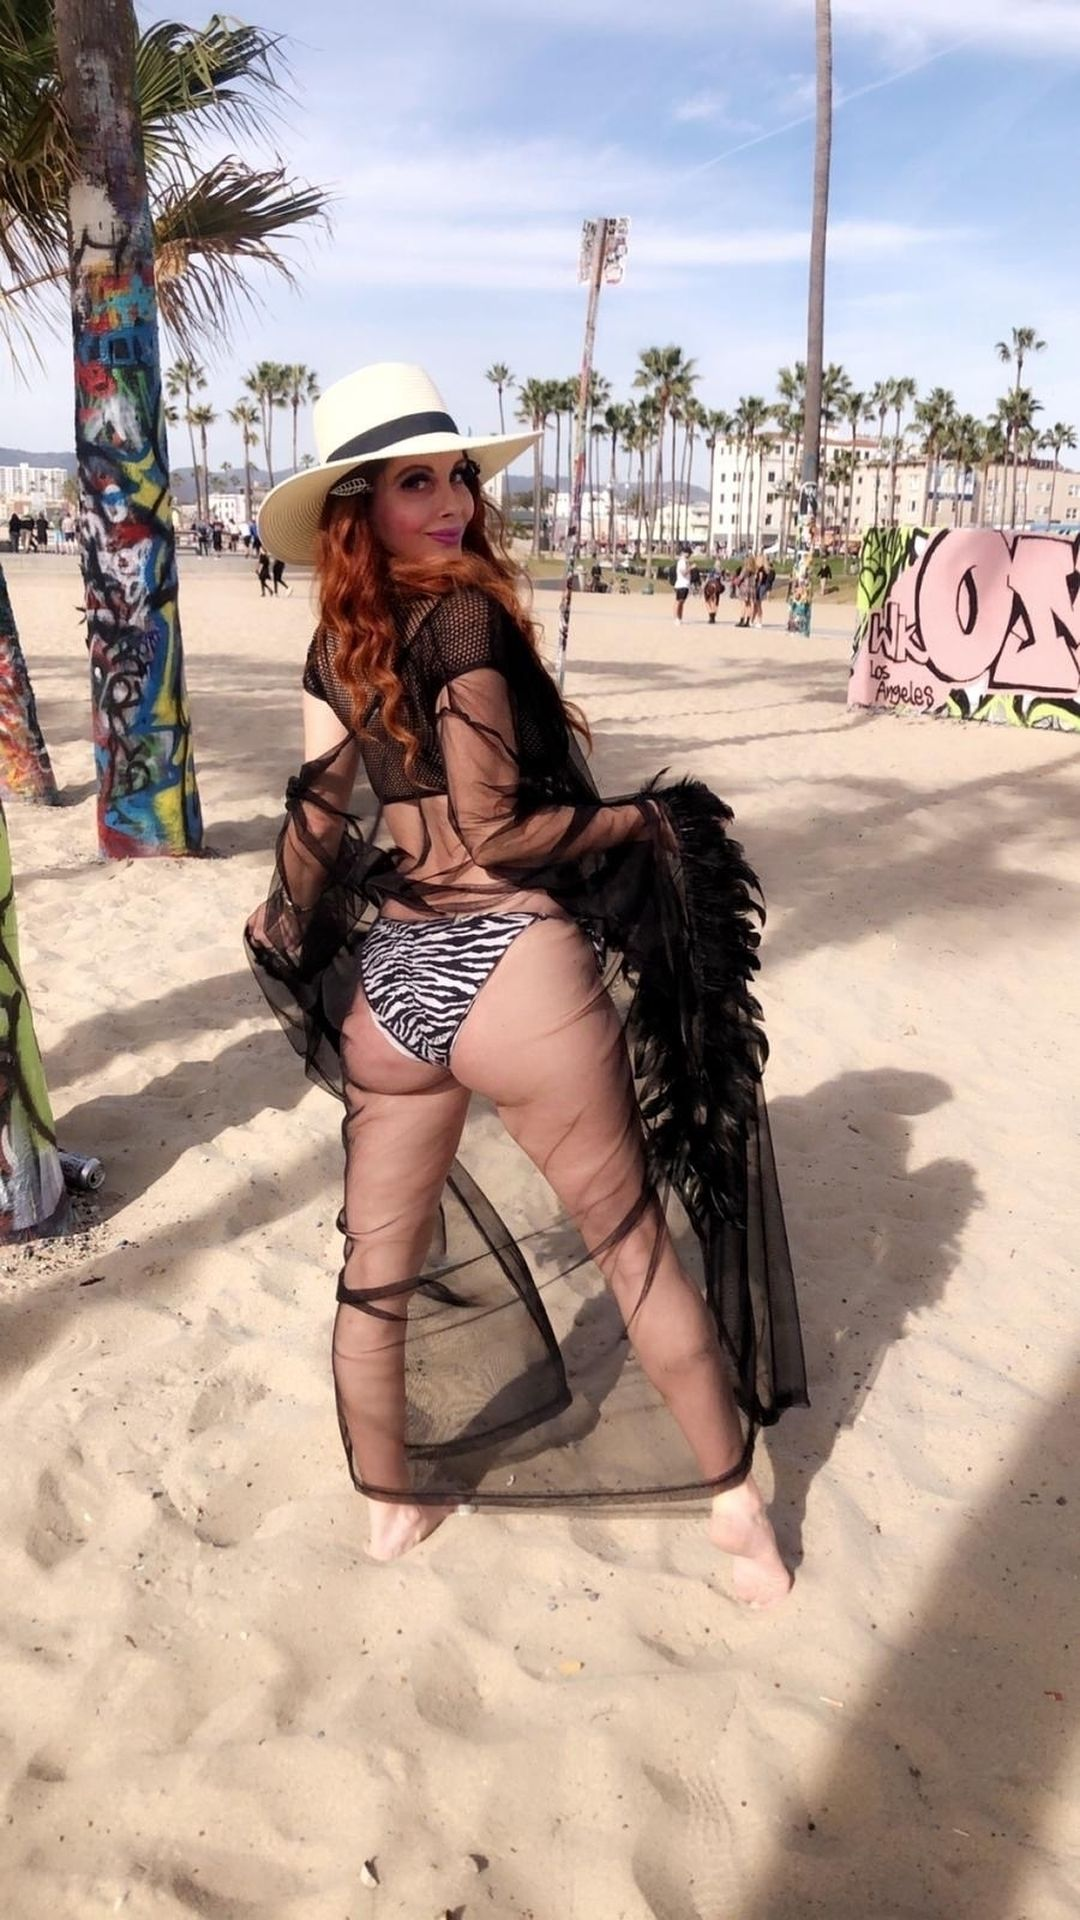 Phoebe Price Shows Off Her Curves In Venice Beach 0026